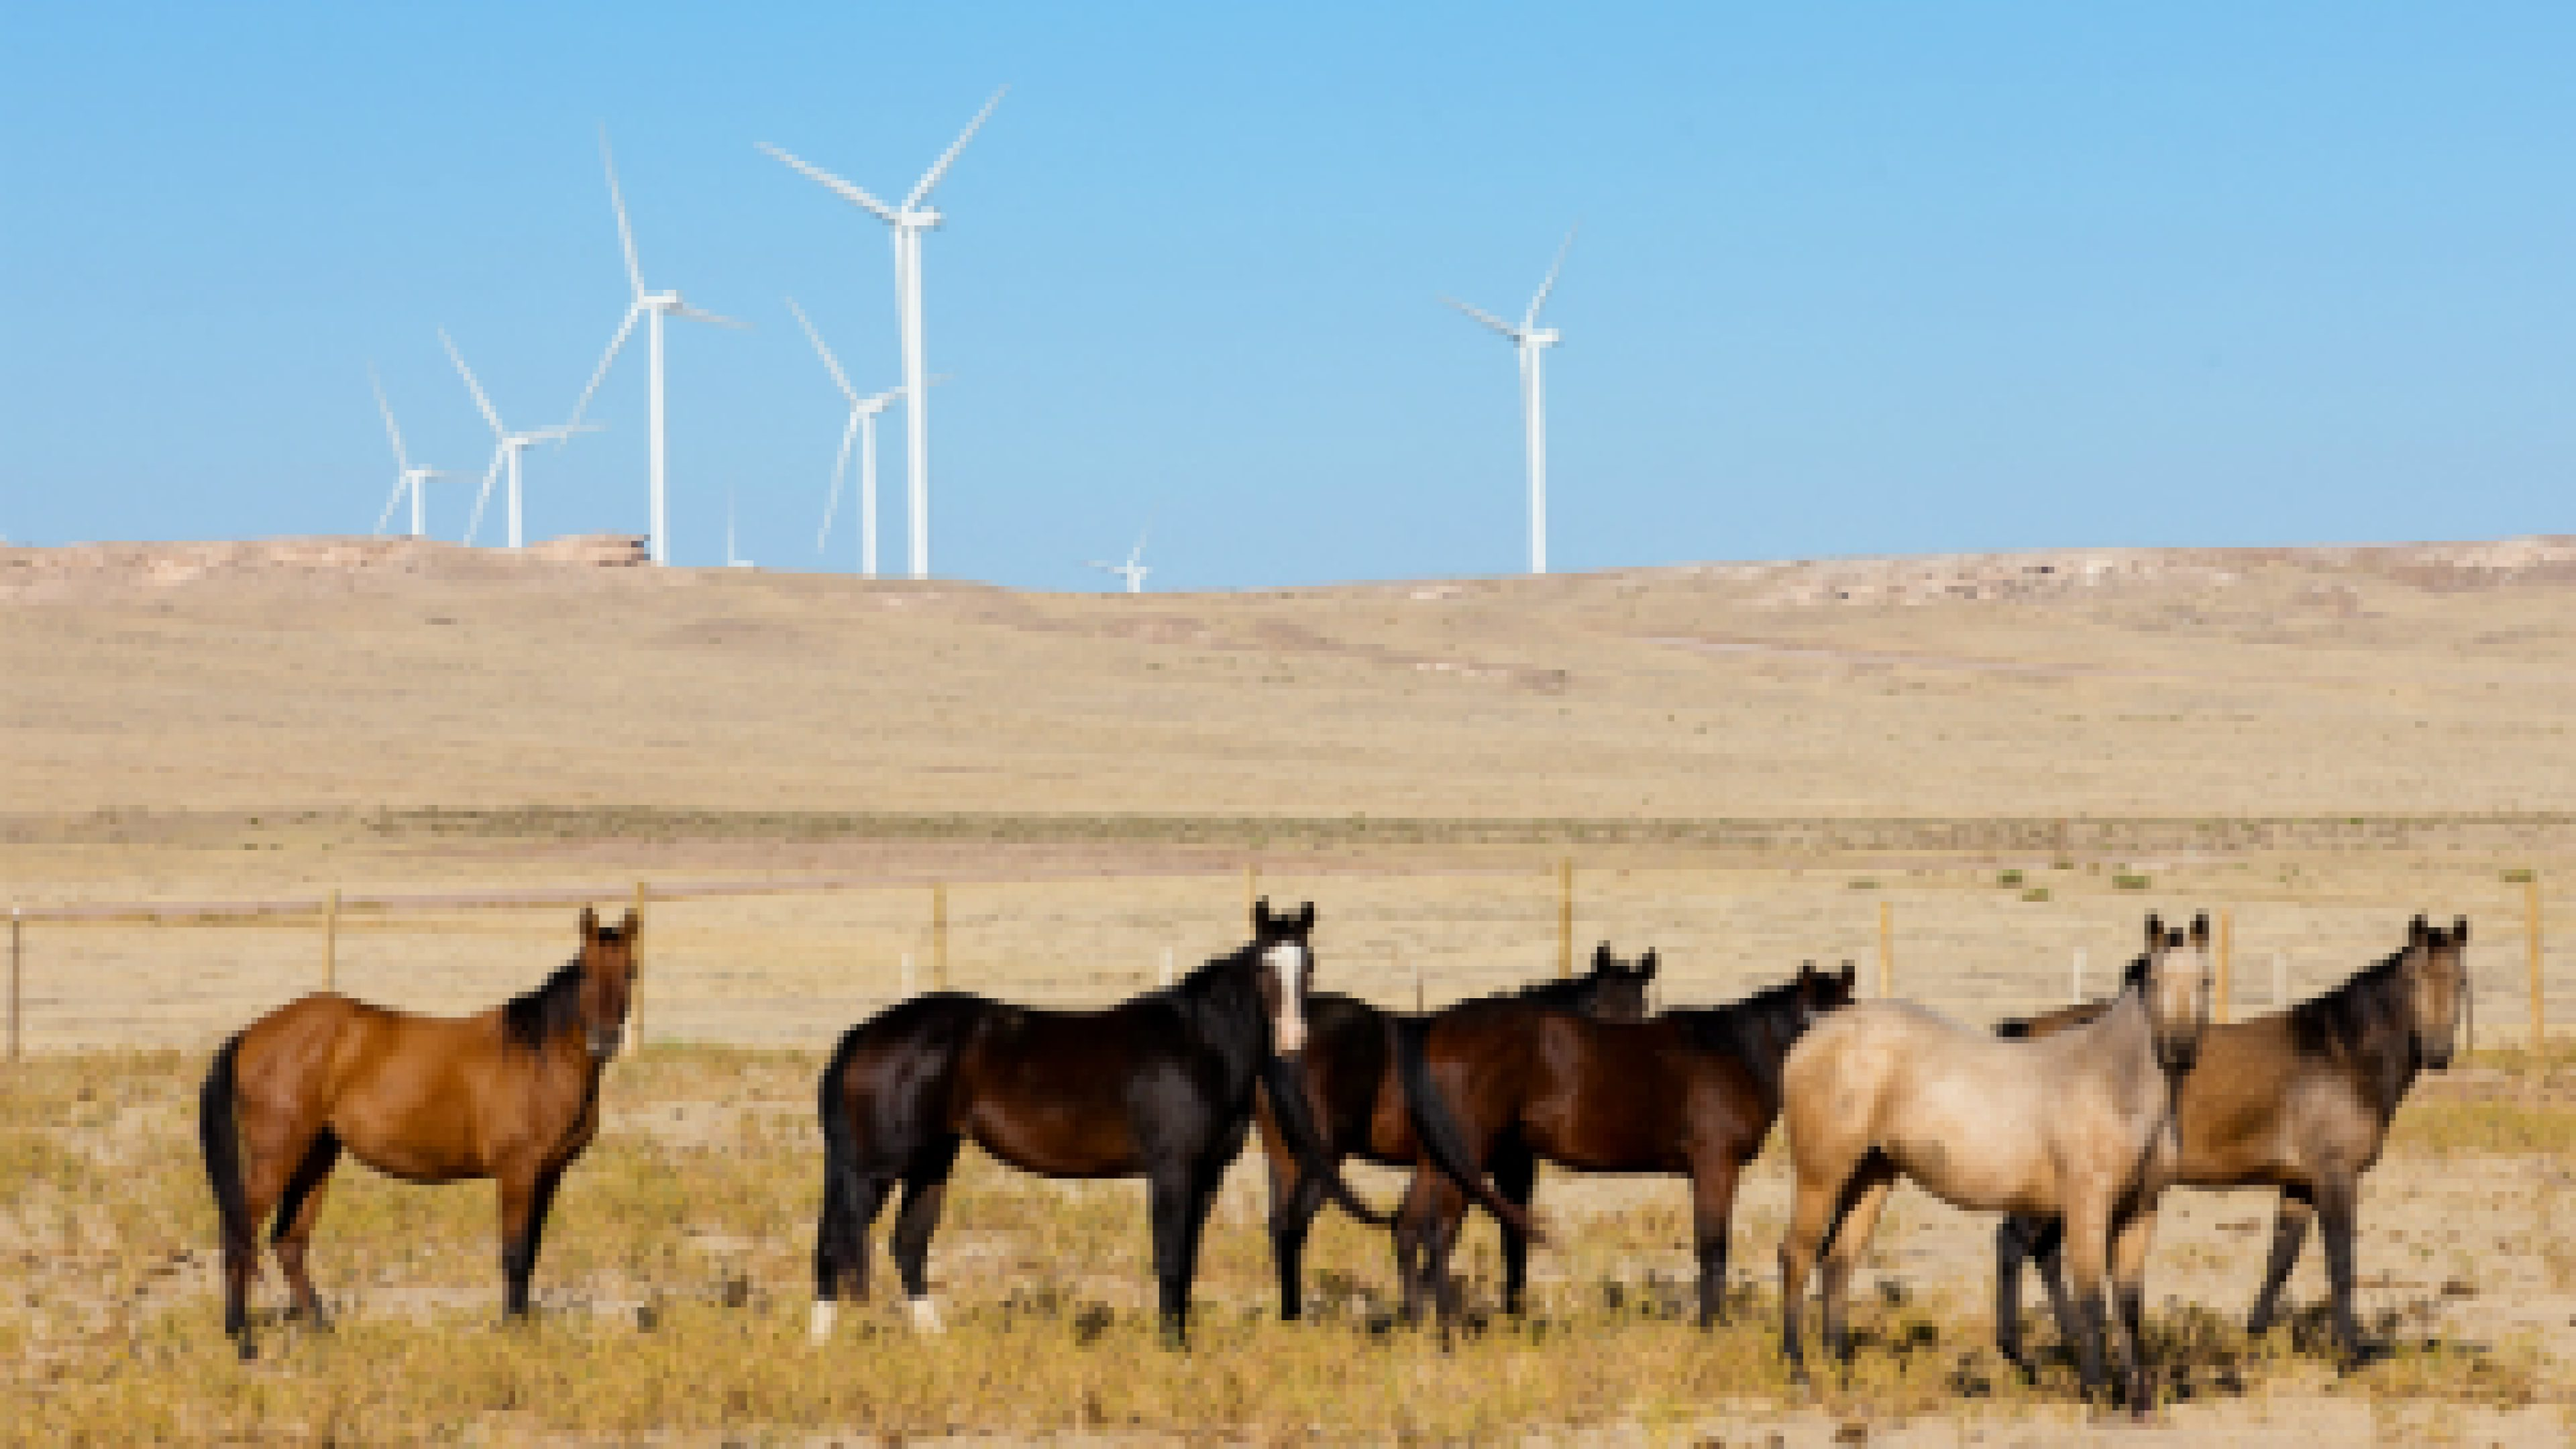 Wind turbines and horses